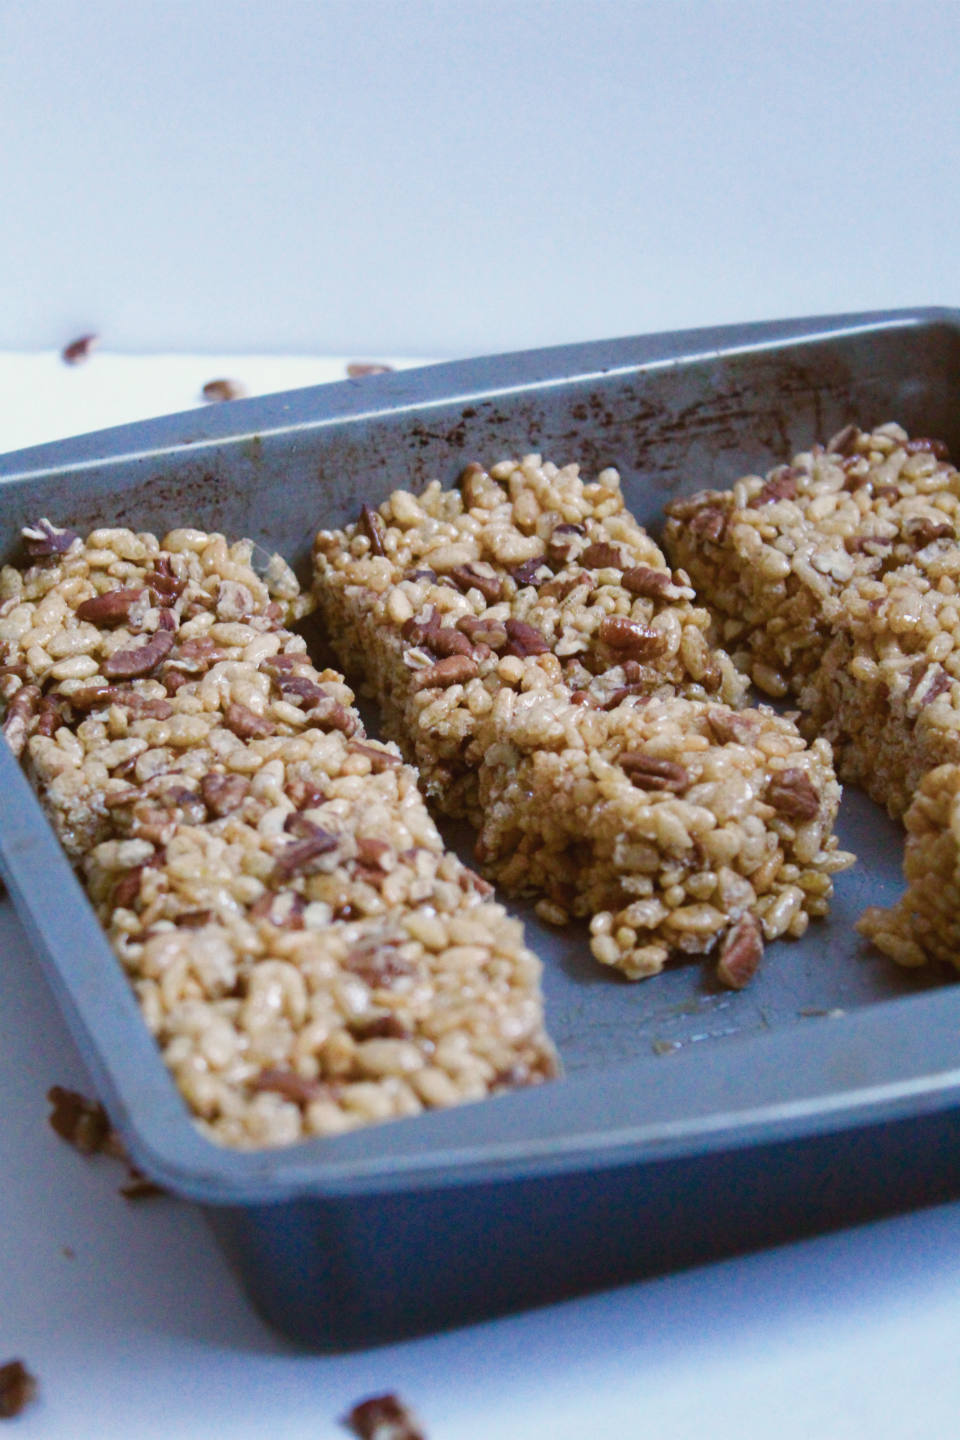 Pecan Pie Rice Krispie Treats -- Two classic dessert recipes join forces to make these addictingly sweet and gooey bars. No marshmallows required! | @sinfulnutrition #vegan #glutenfree